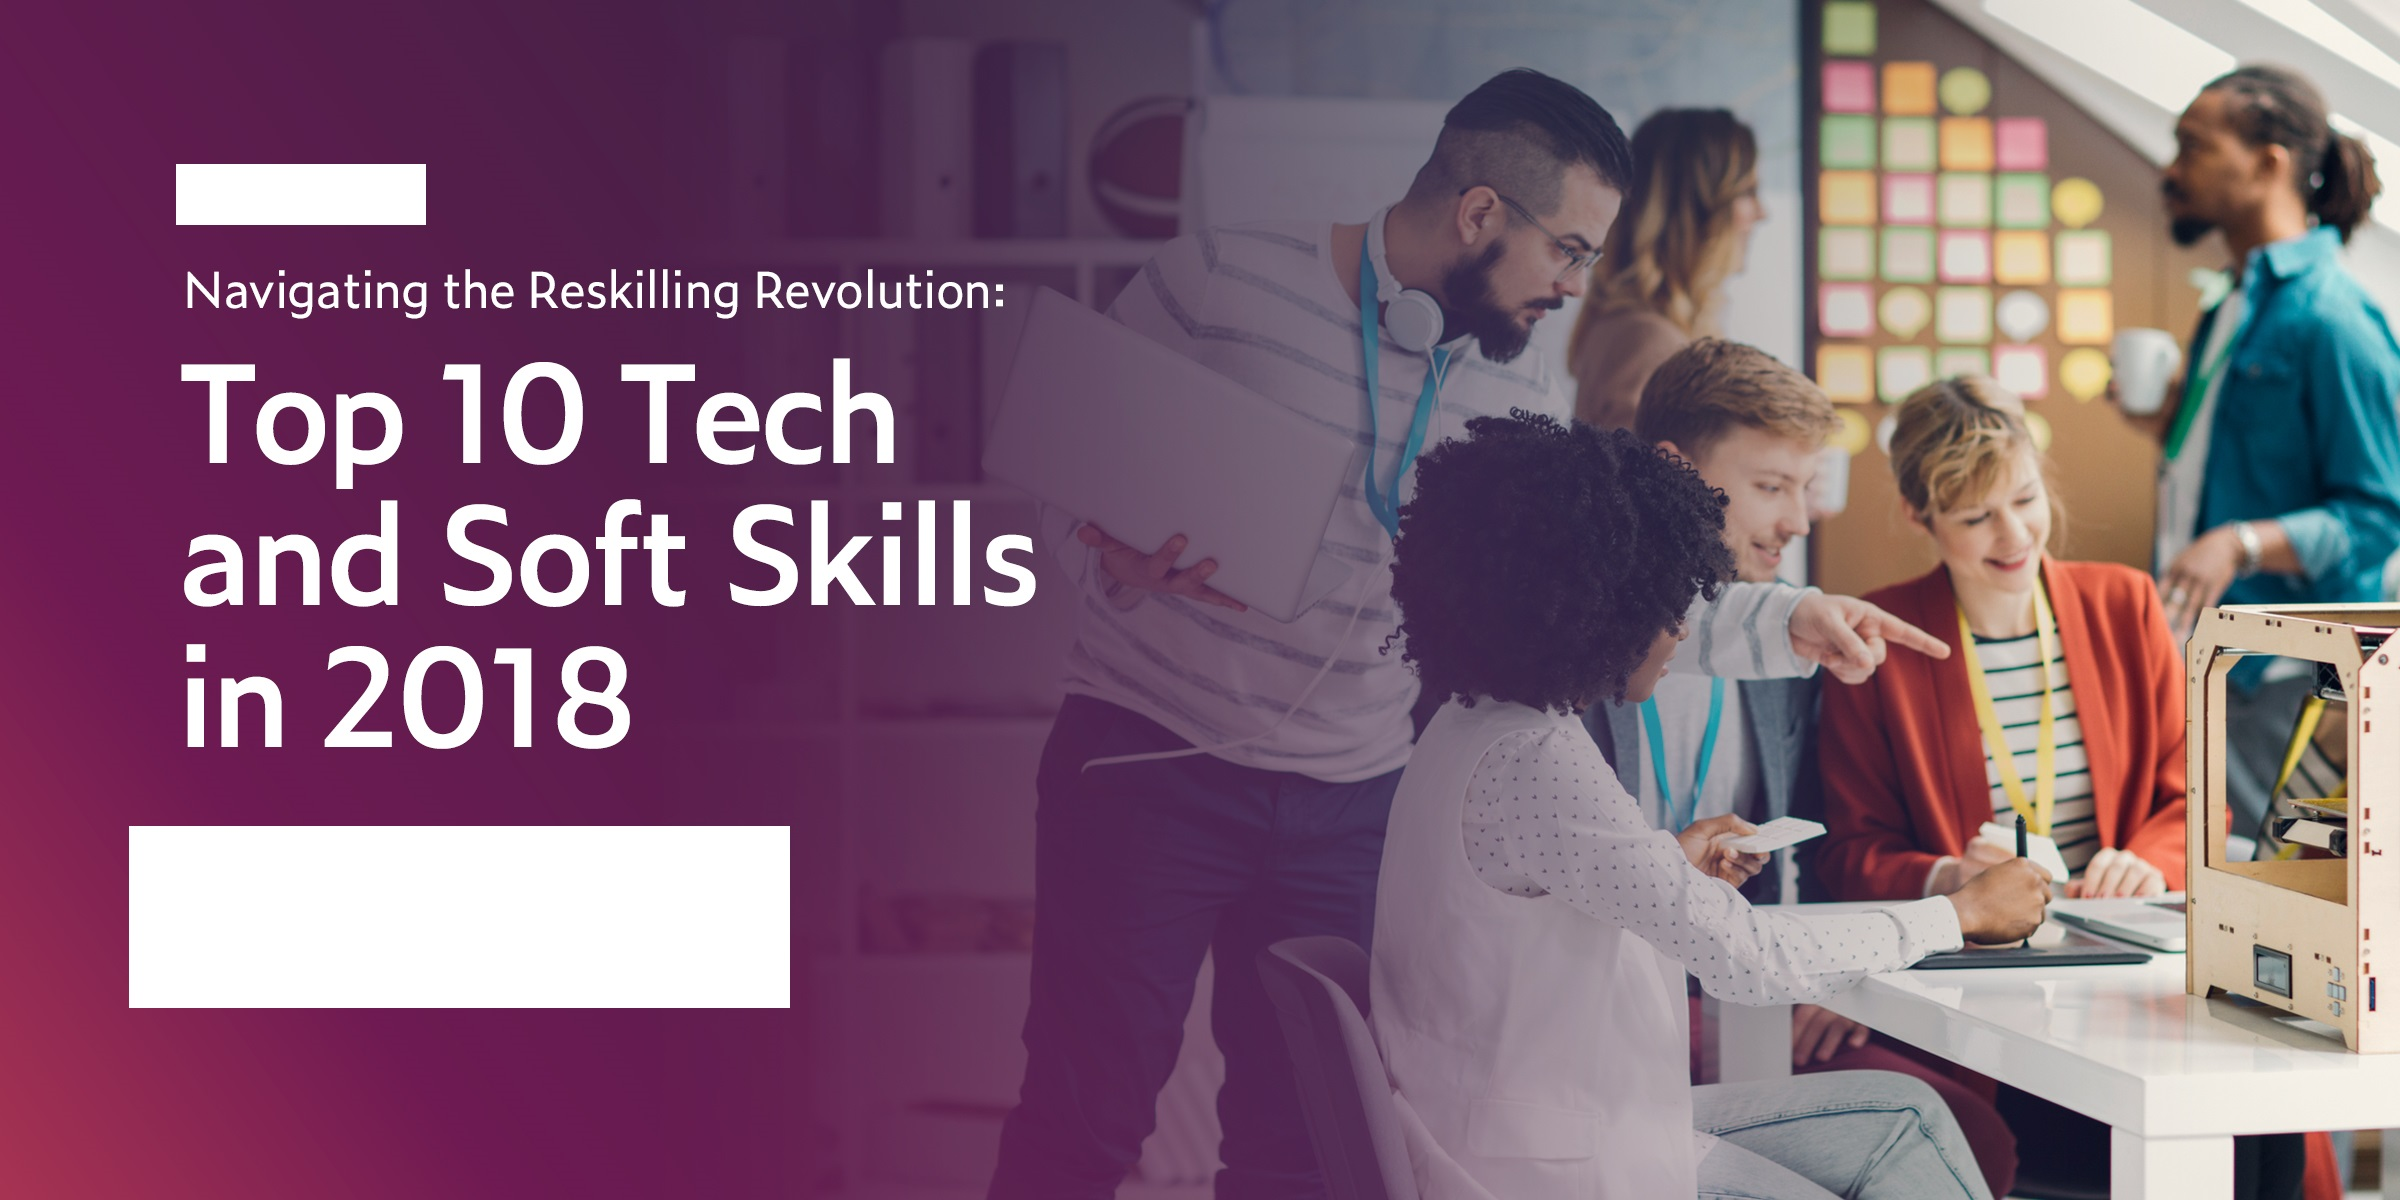 Udemy Skill Survey : Top 10 Tech Skills and Top 10 Soft Skills trending in reskilling revolution